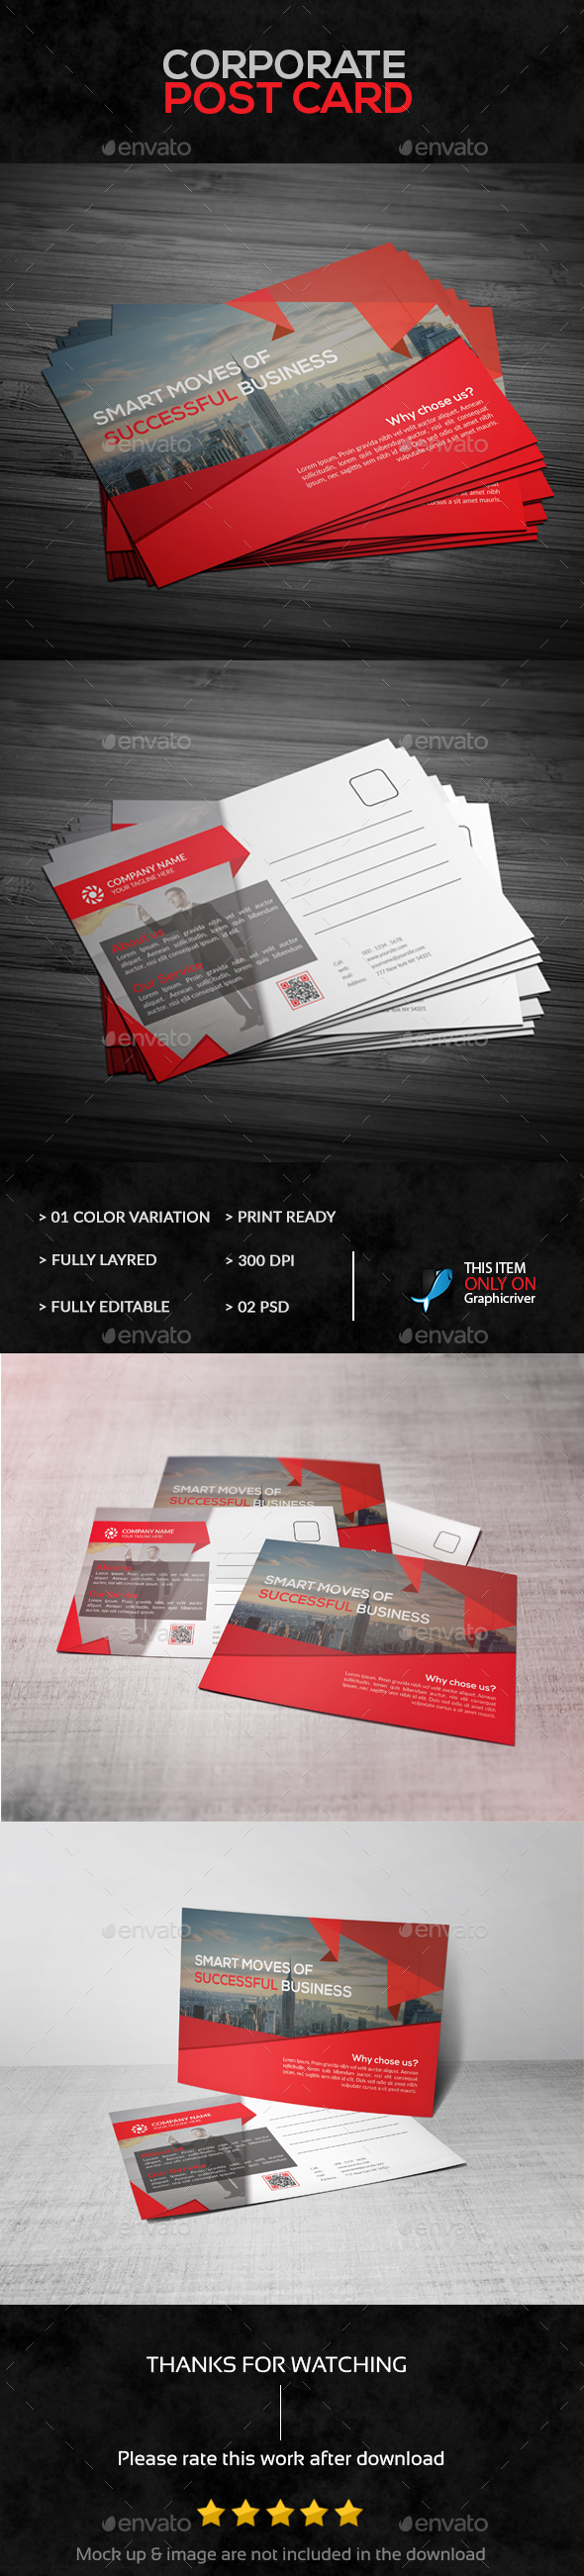 Corporate Business Post Card | Corporate business, Post card and ...